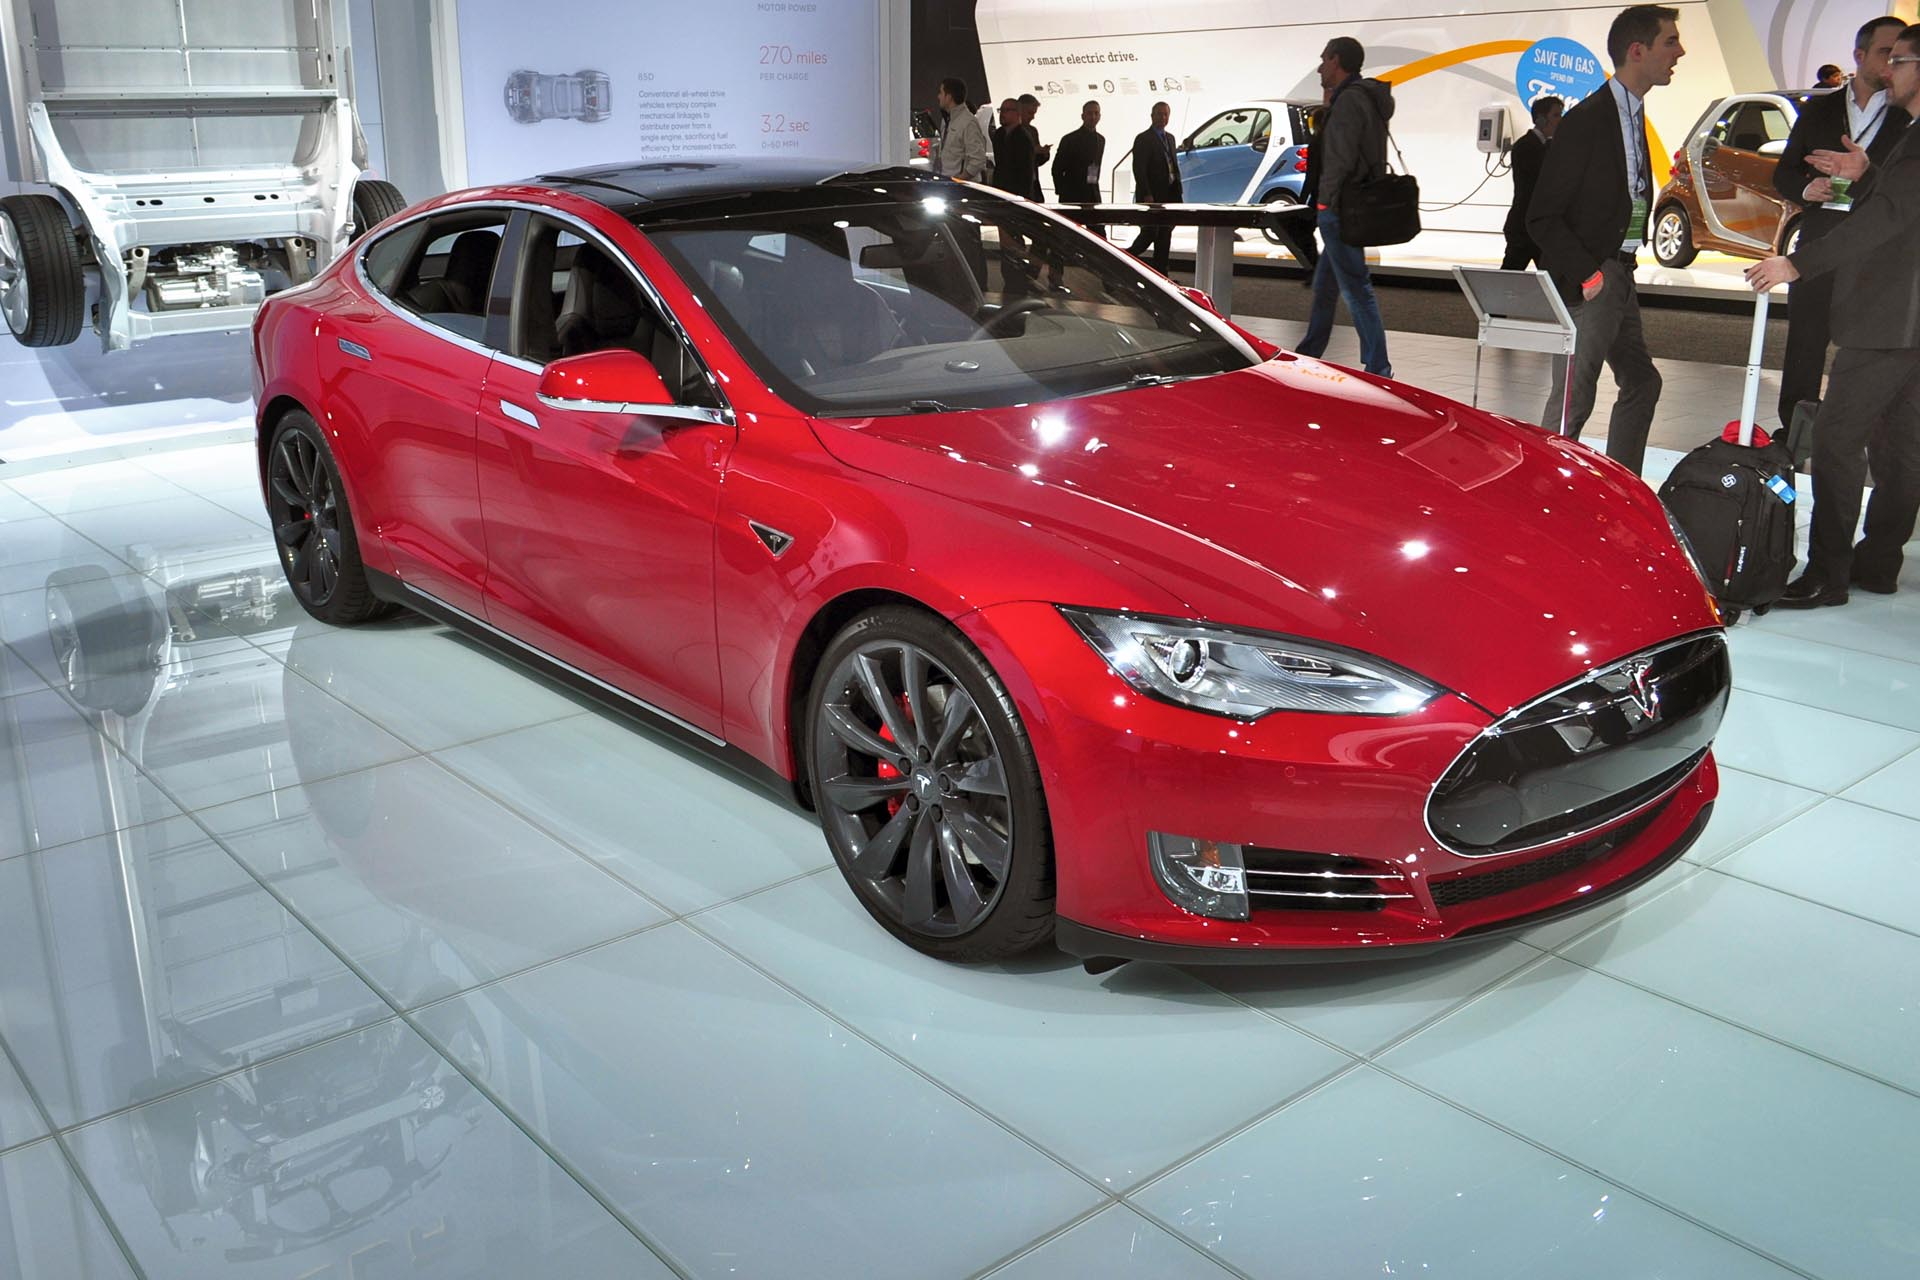 Consumer Reports announces Top Picks among 2015 models